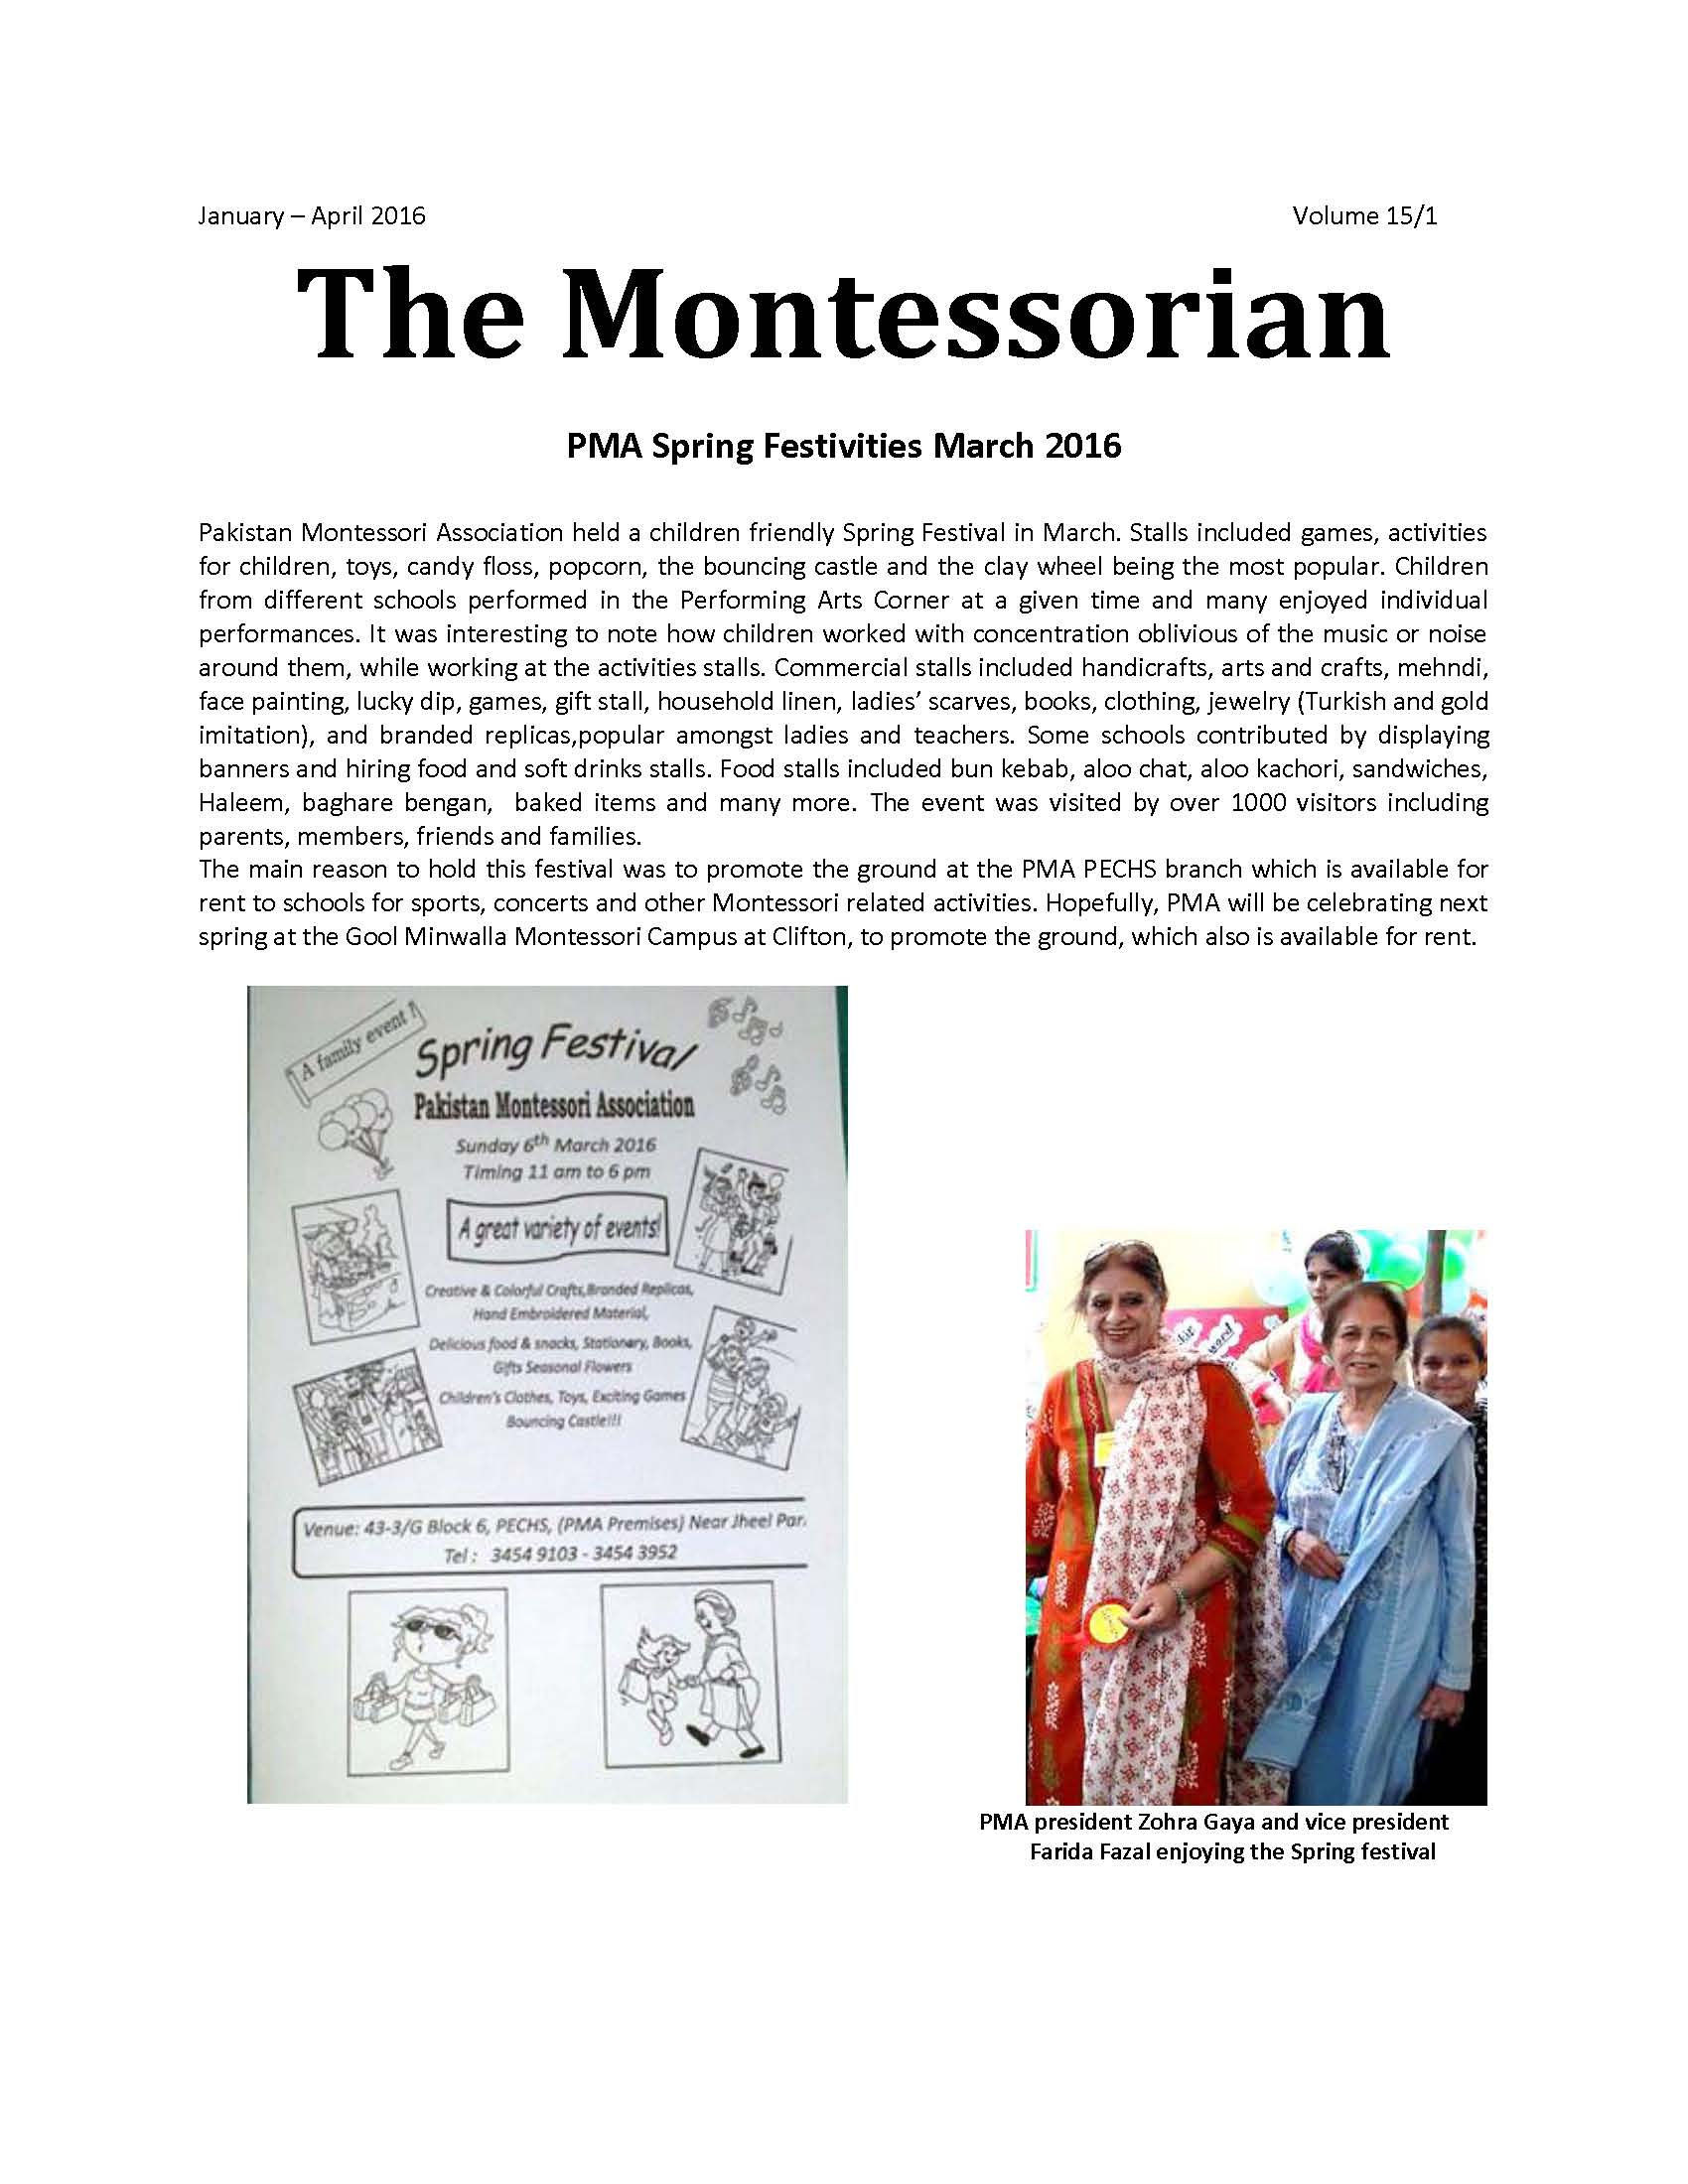 Montessorian_Jan-Apr_2016_Page_1